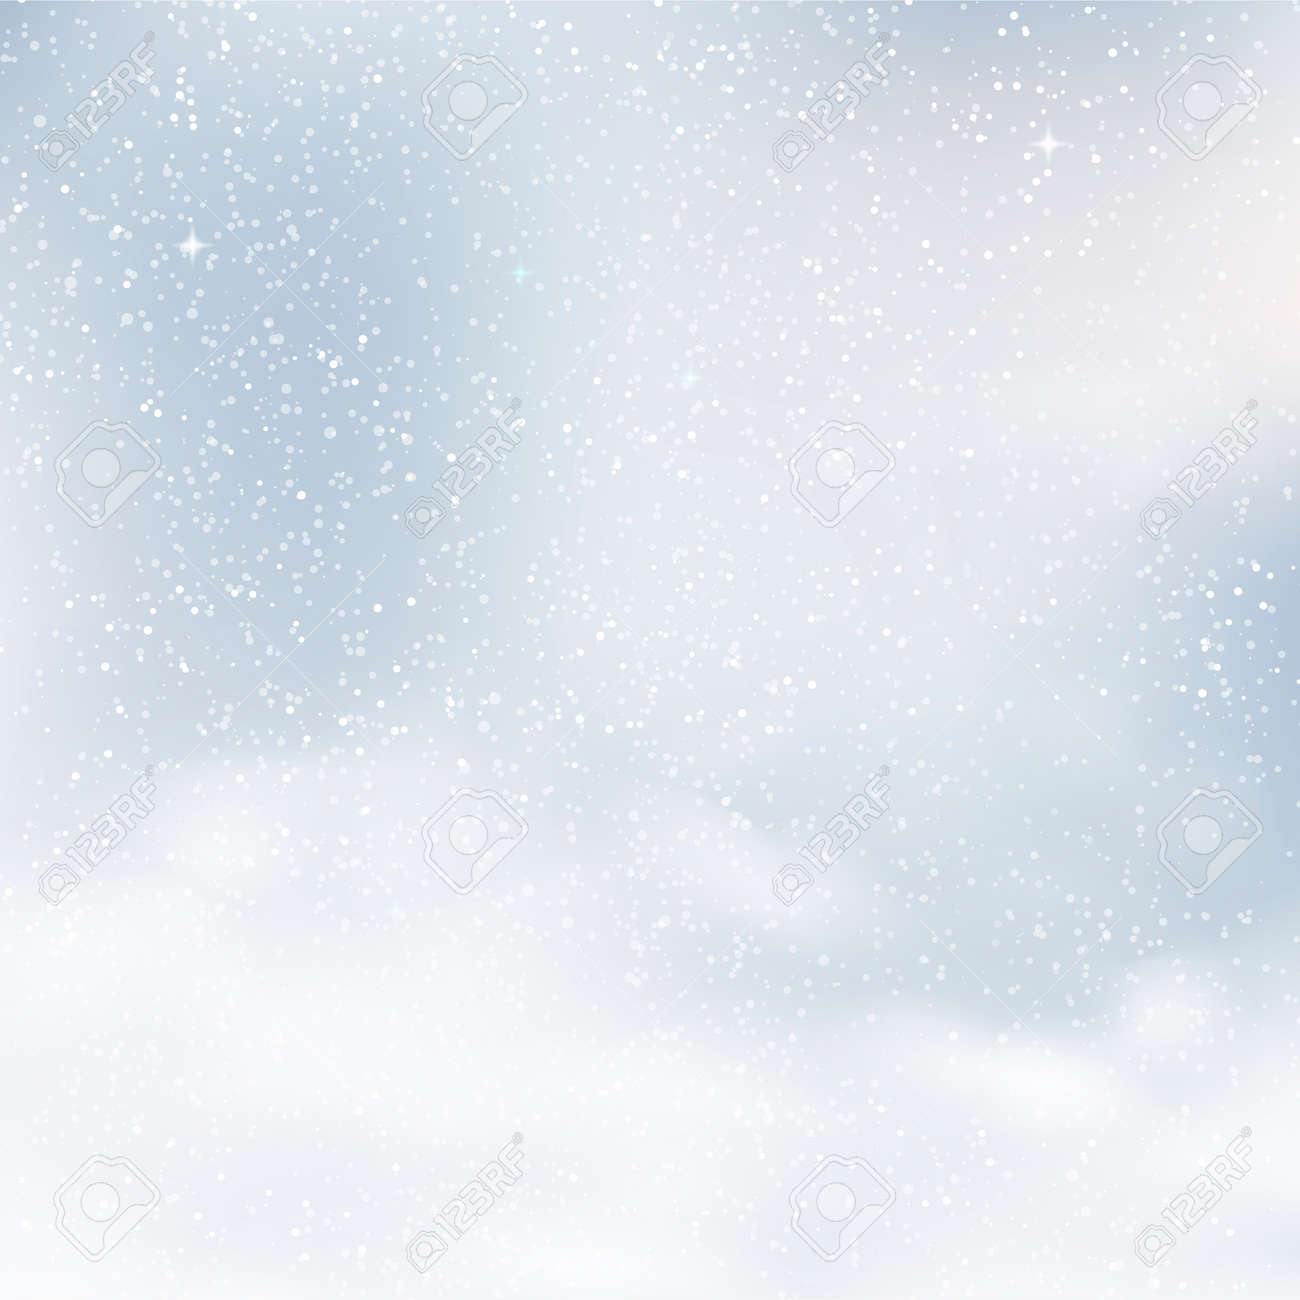 Blurred Christmas background with snowflakes and blue sky. Vector. - 126855062